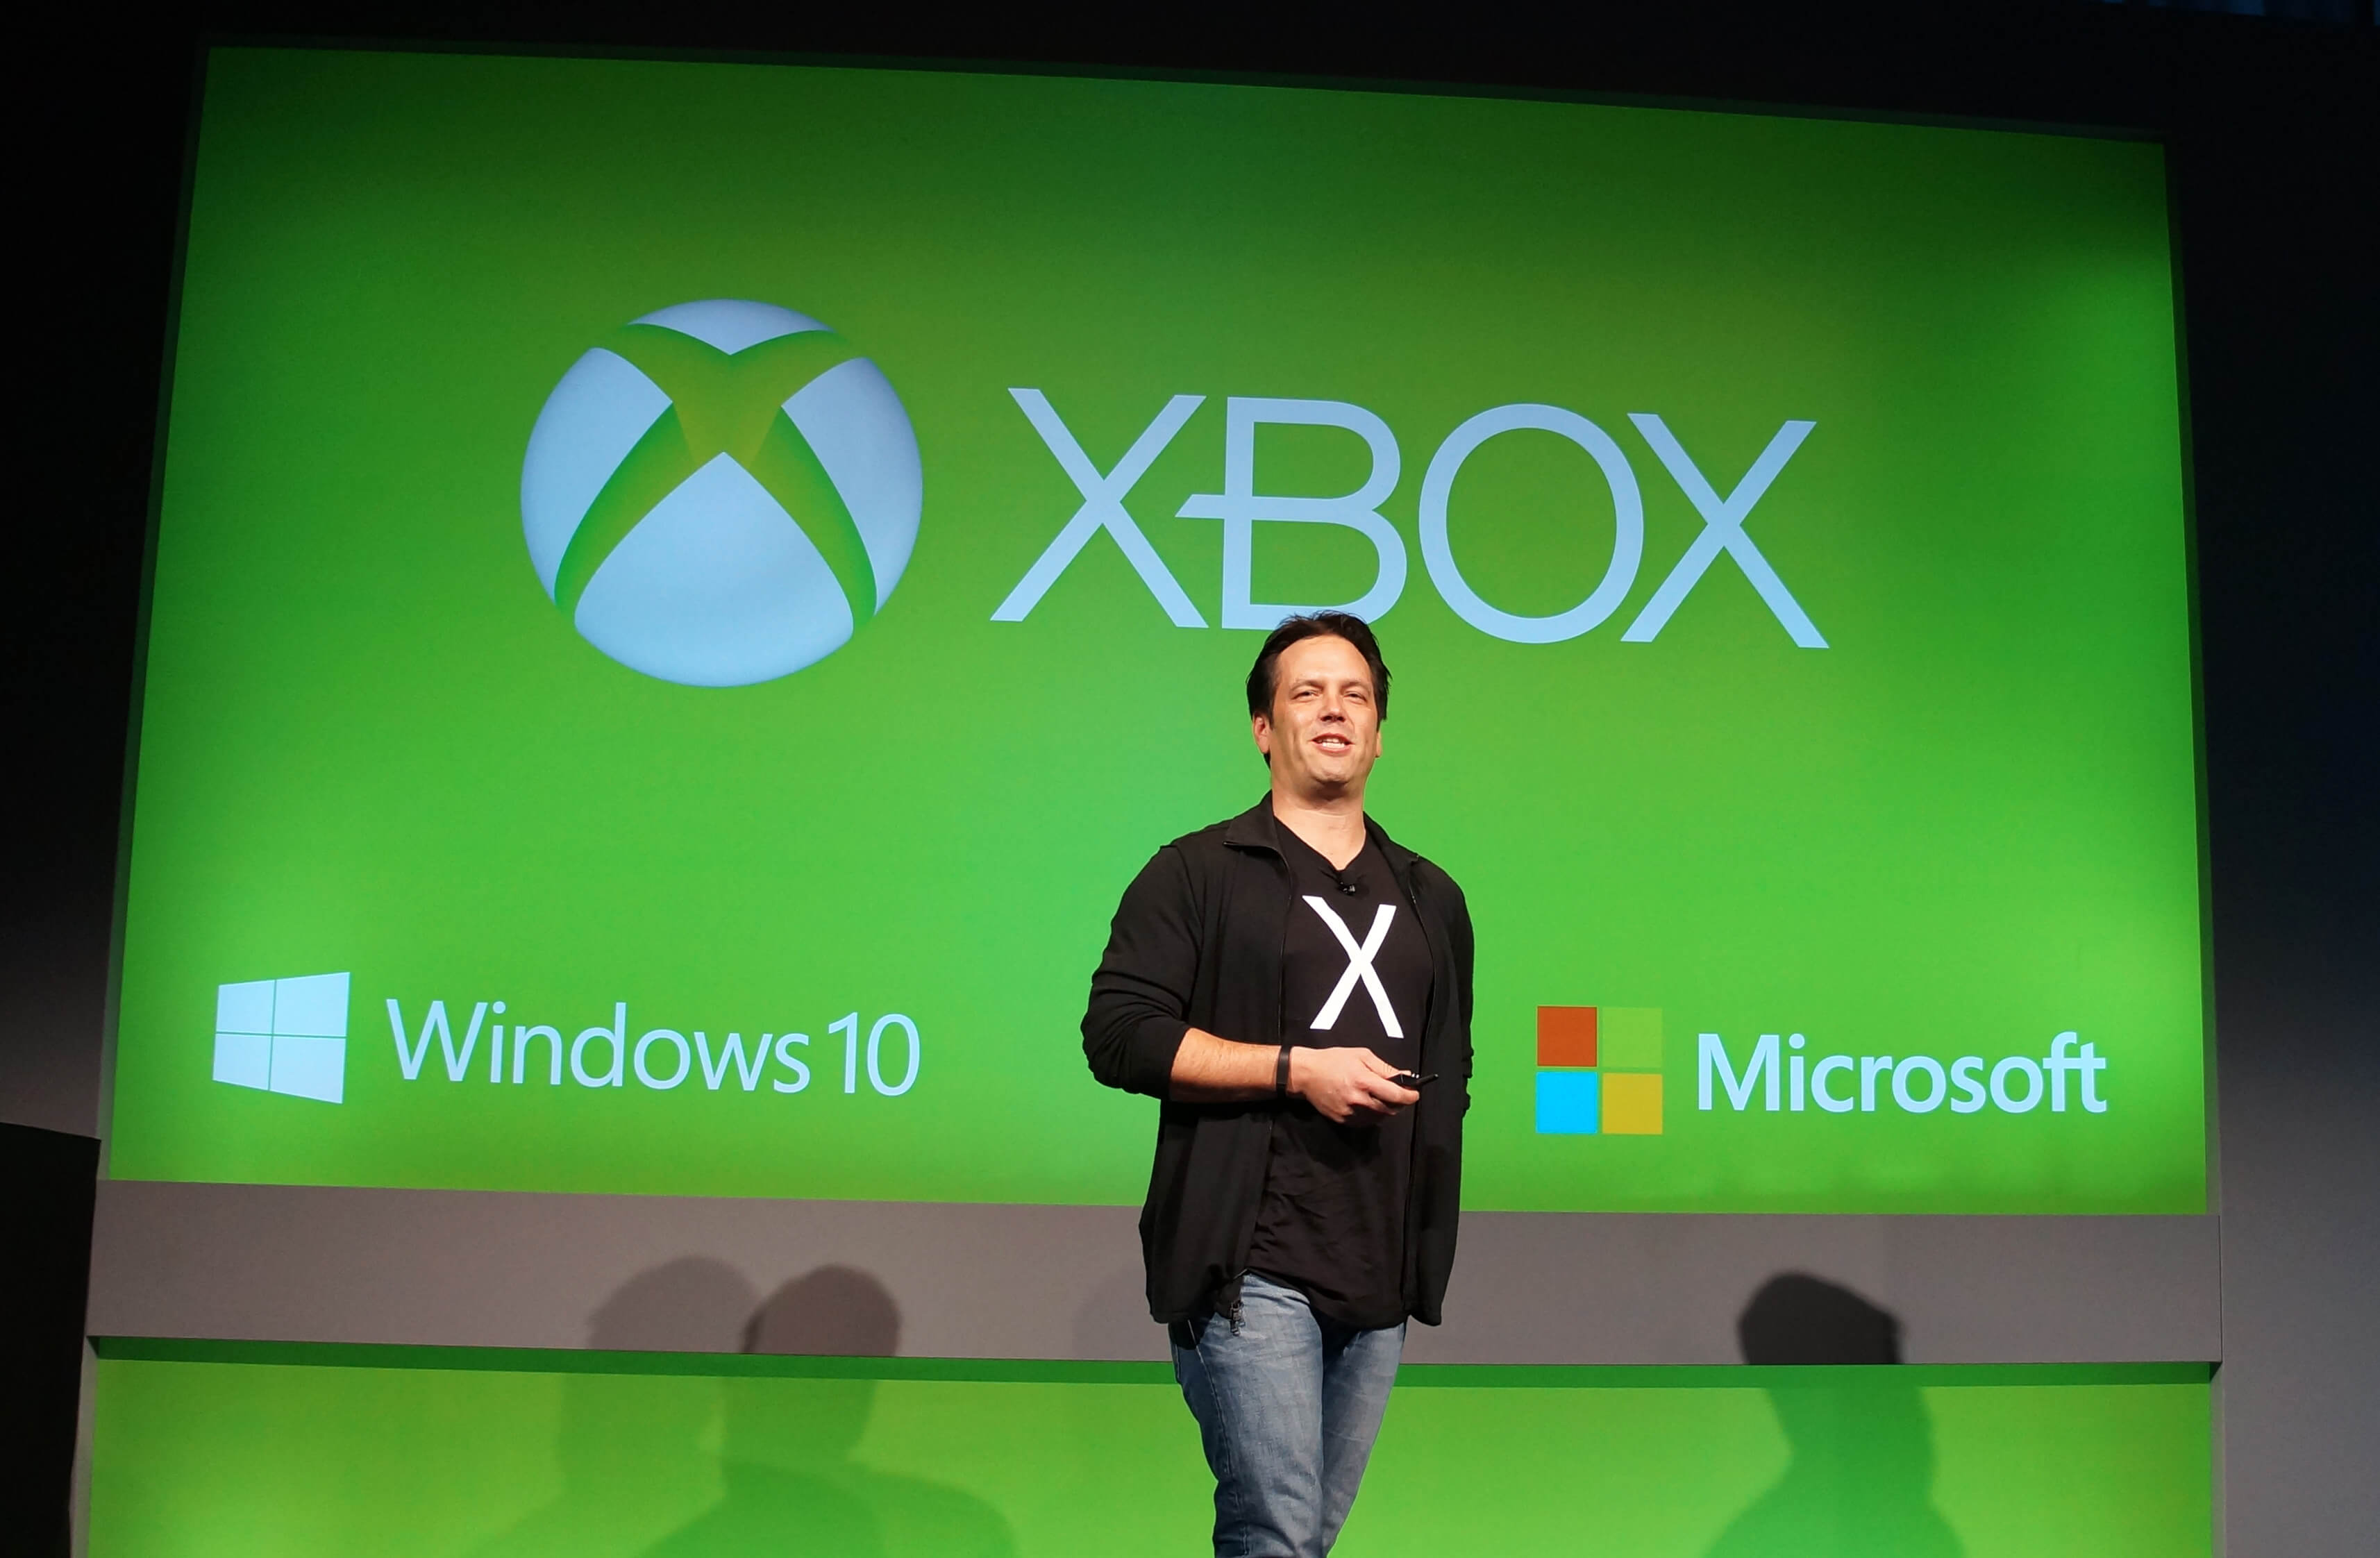 Microsoft knows gamers think the Windows app store is terrible